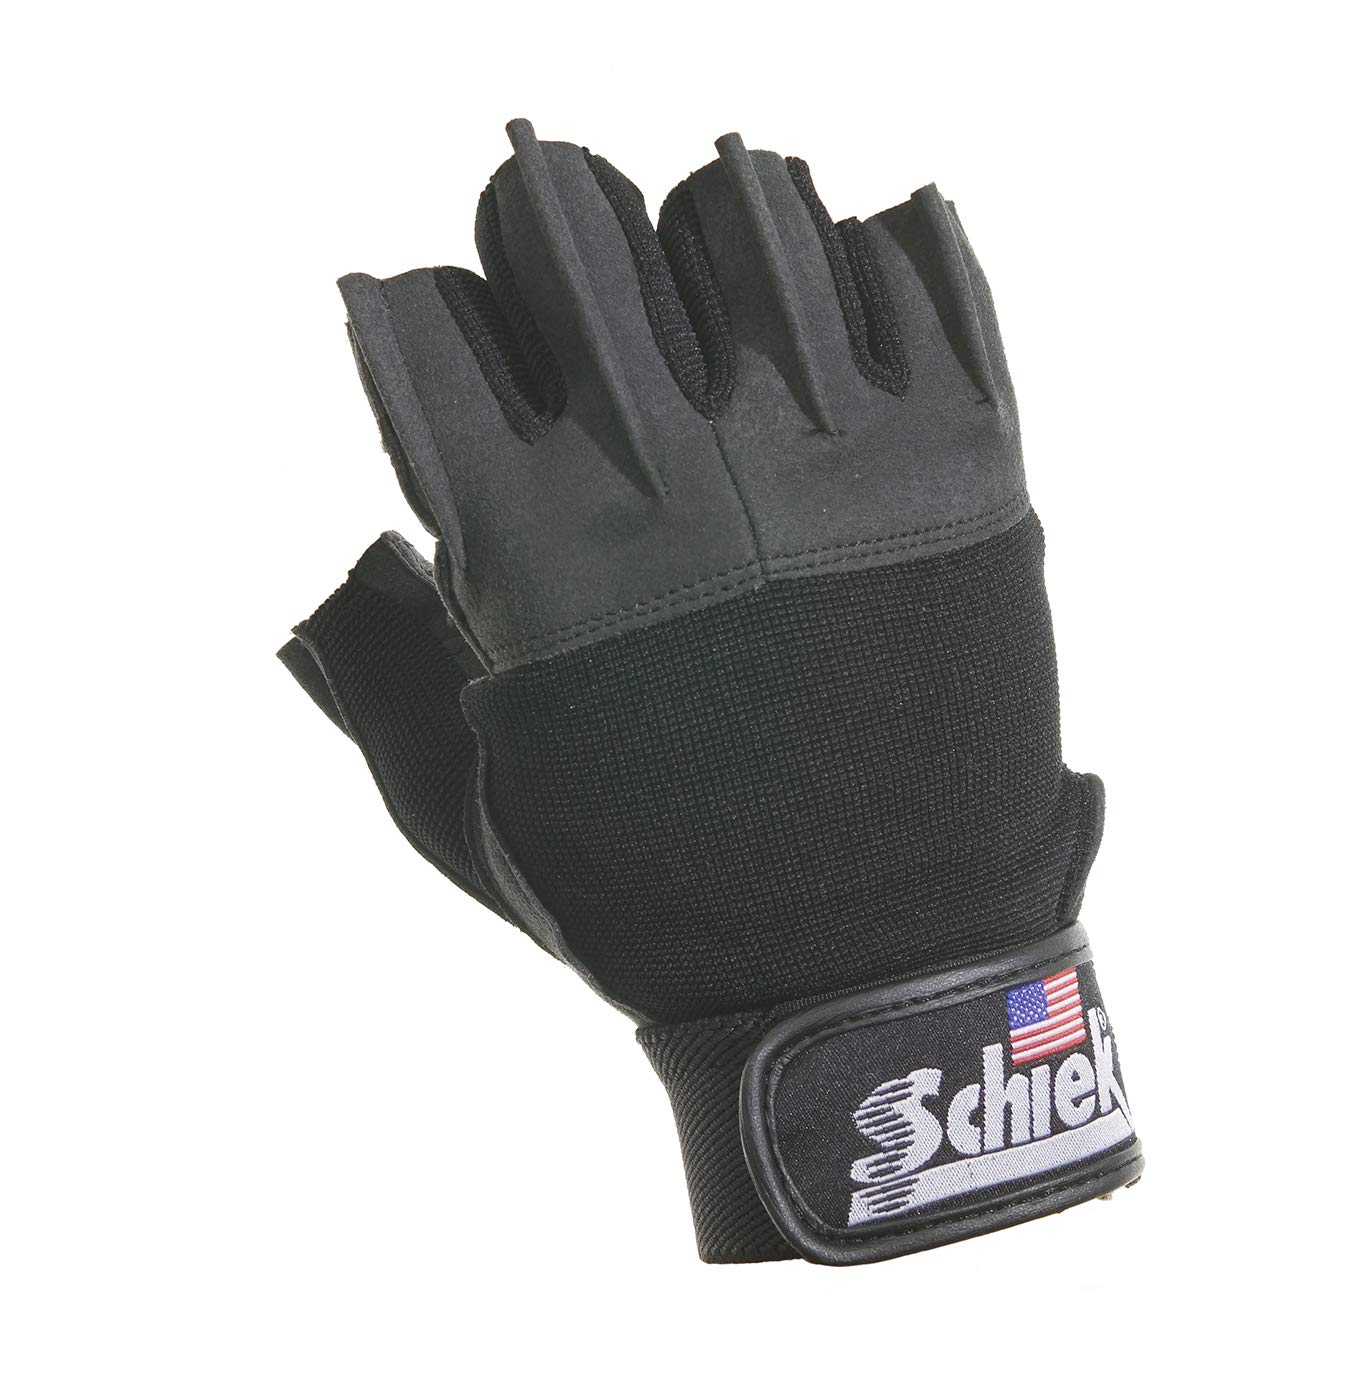 Schiek Sports Gloves 530 Medium